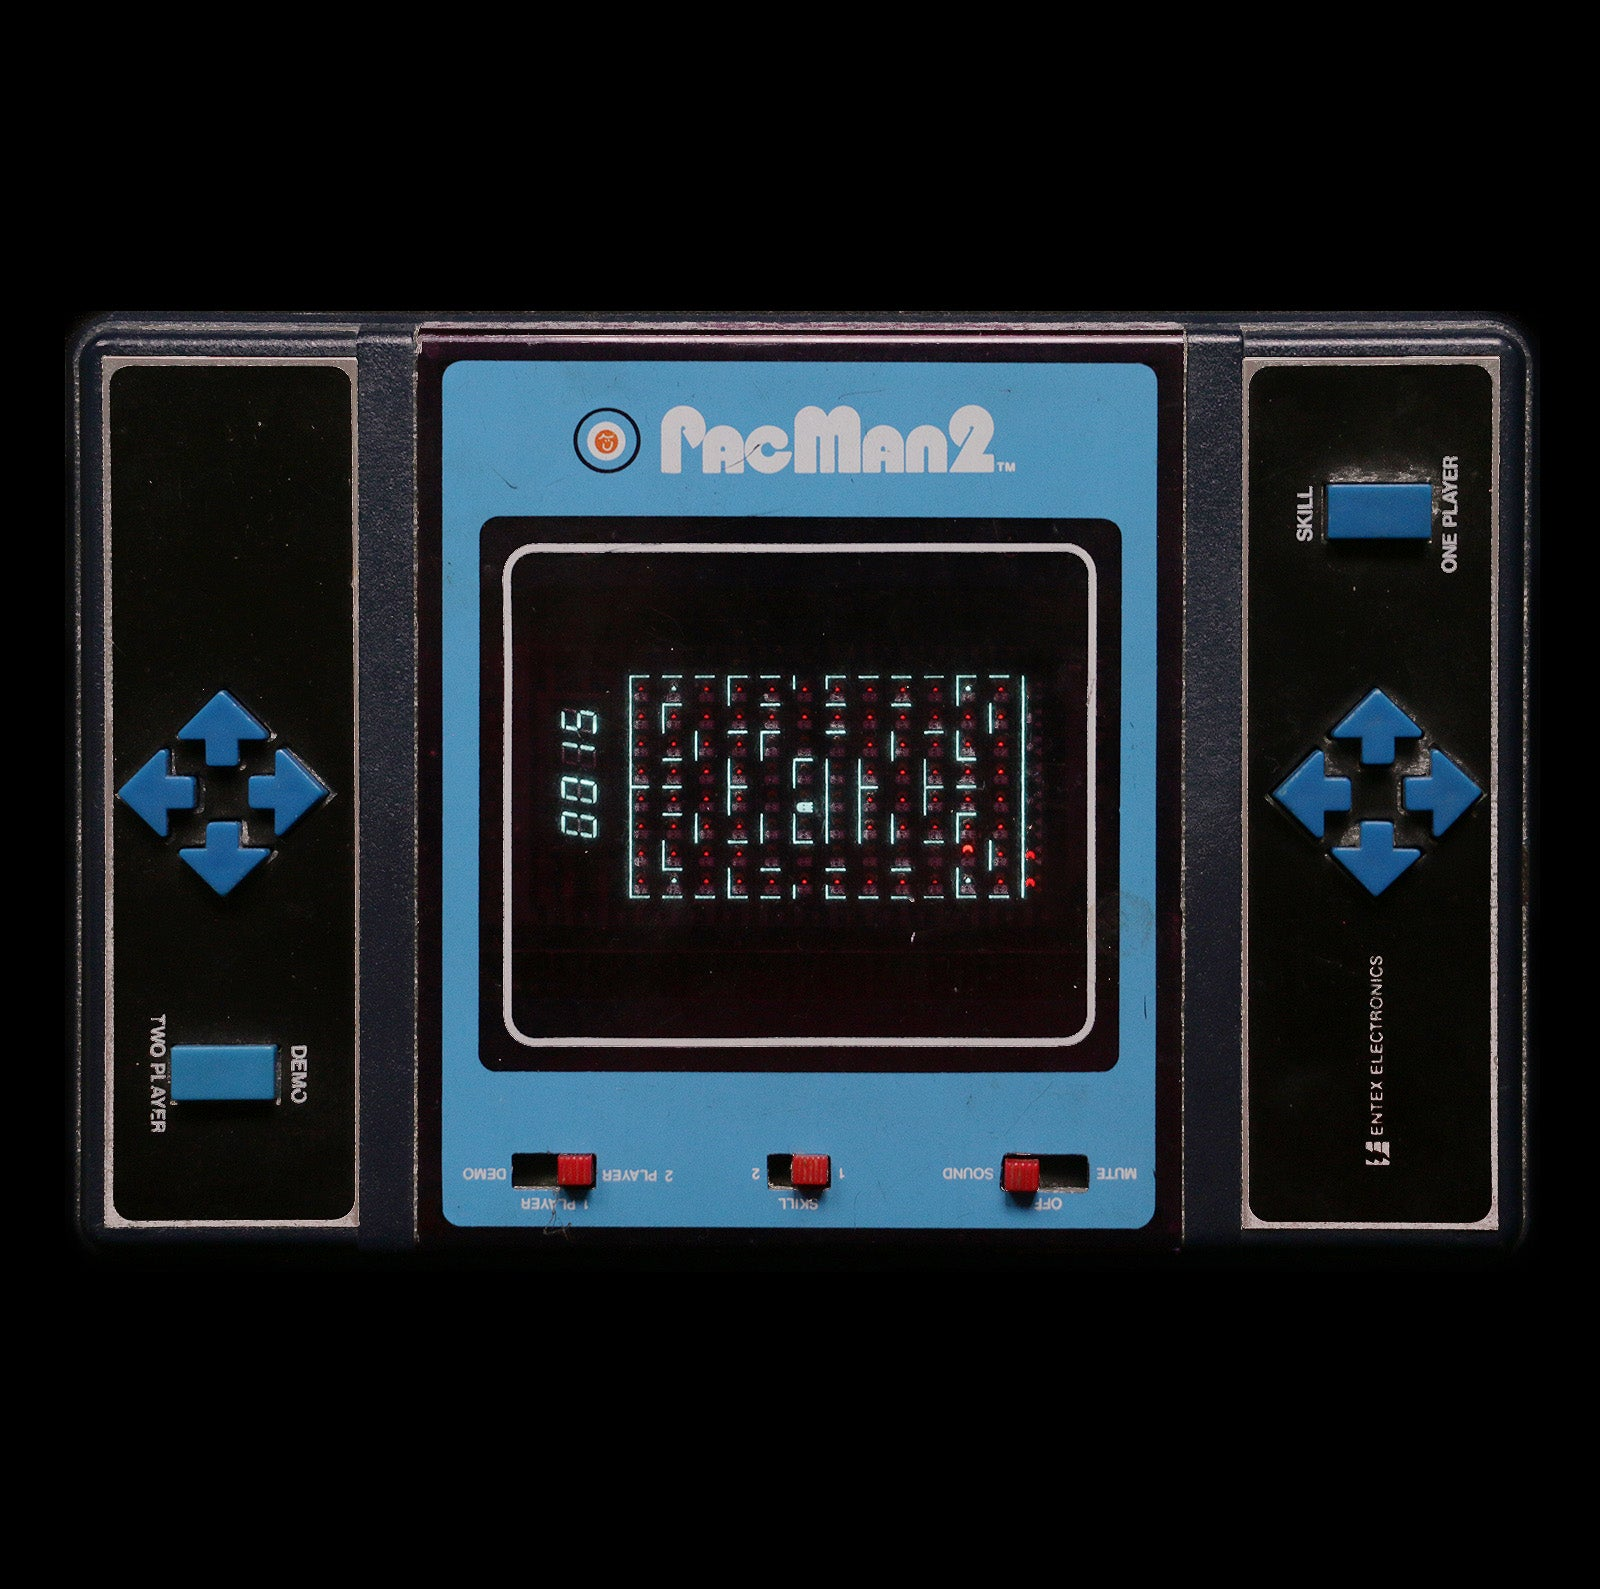 photo essay 13 classic handheld game portraits  photo essay 13 classic handheld game portraits